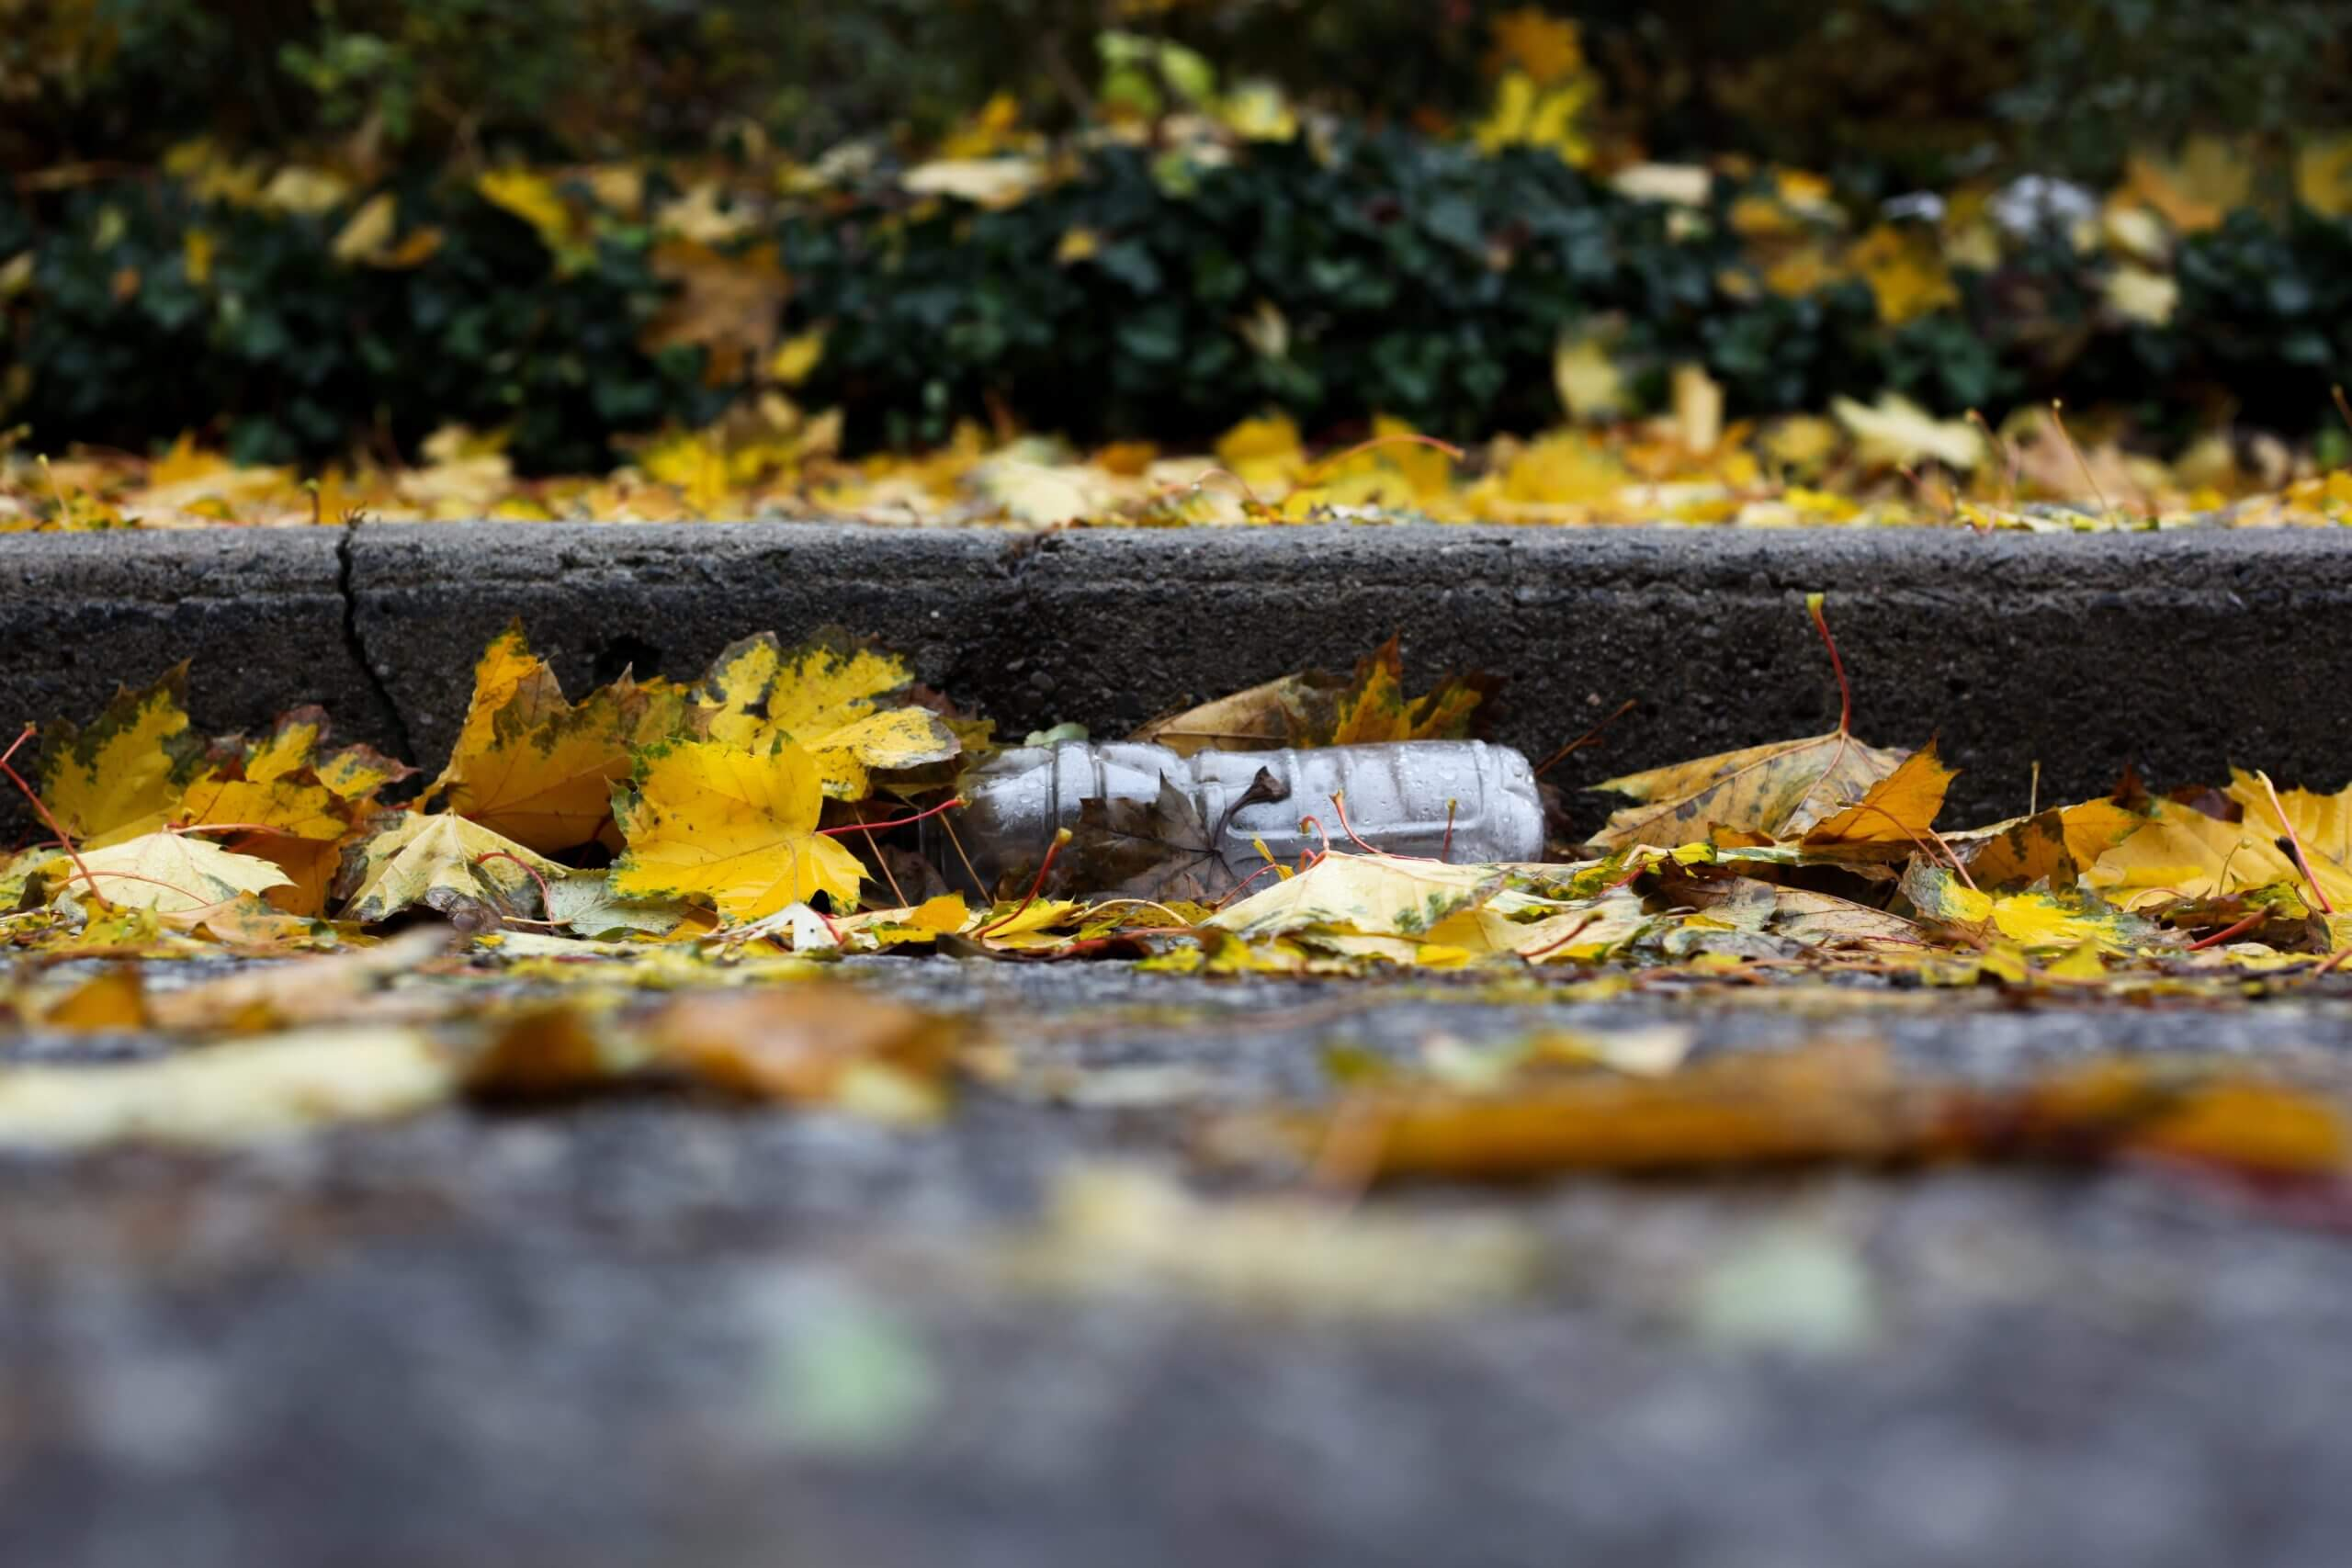 water bottle covered by leaves affecting the environment